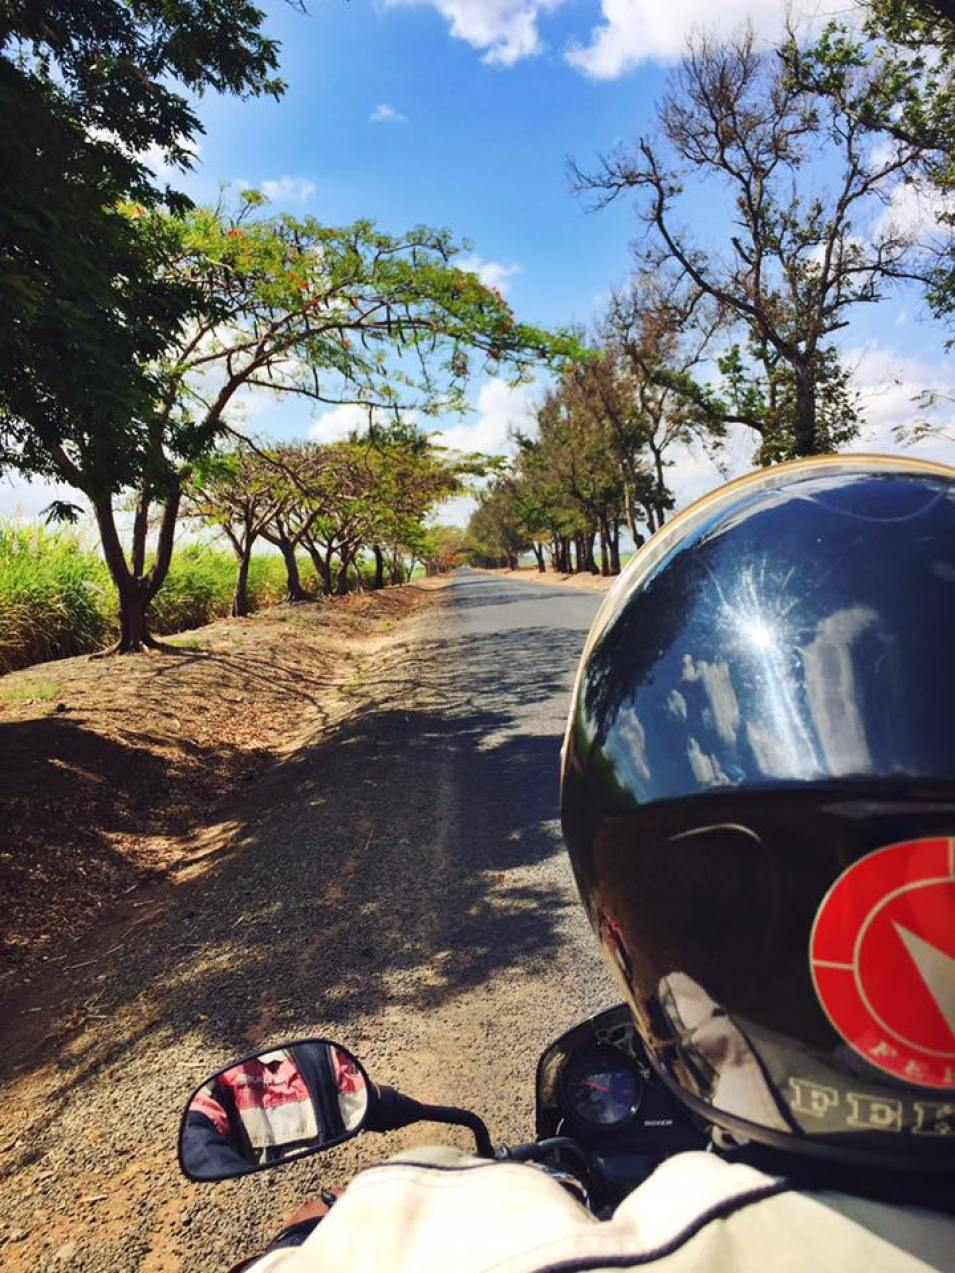 Driving on a boda boda in Tanzania